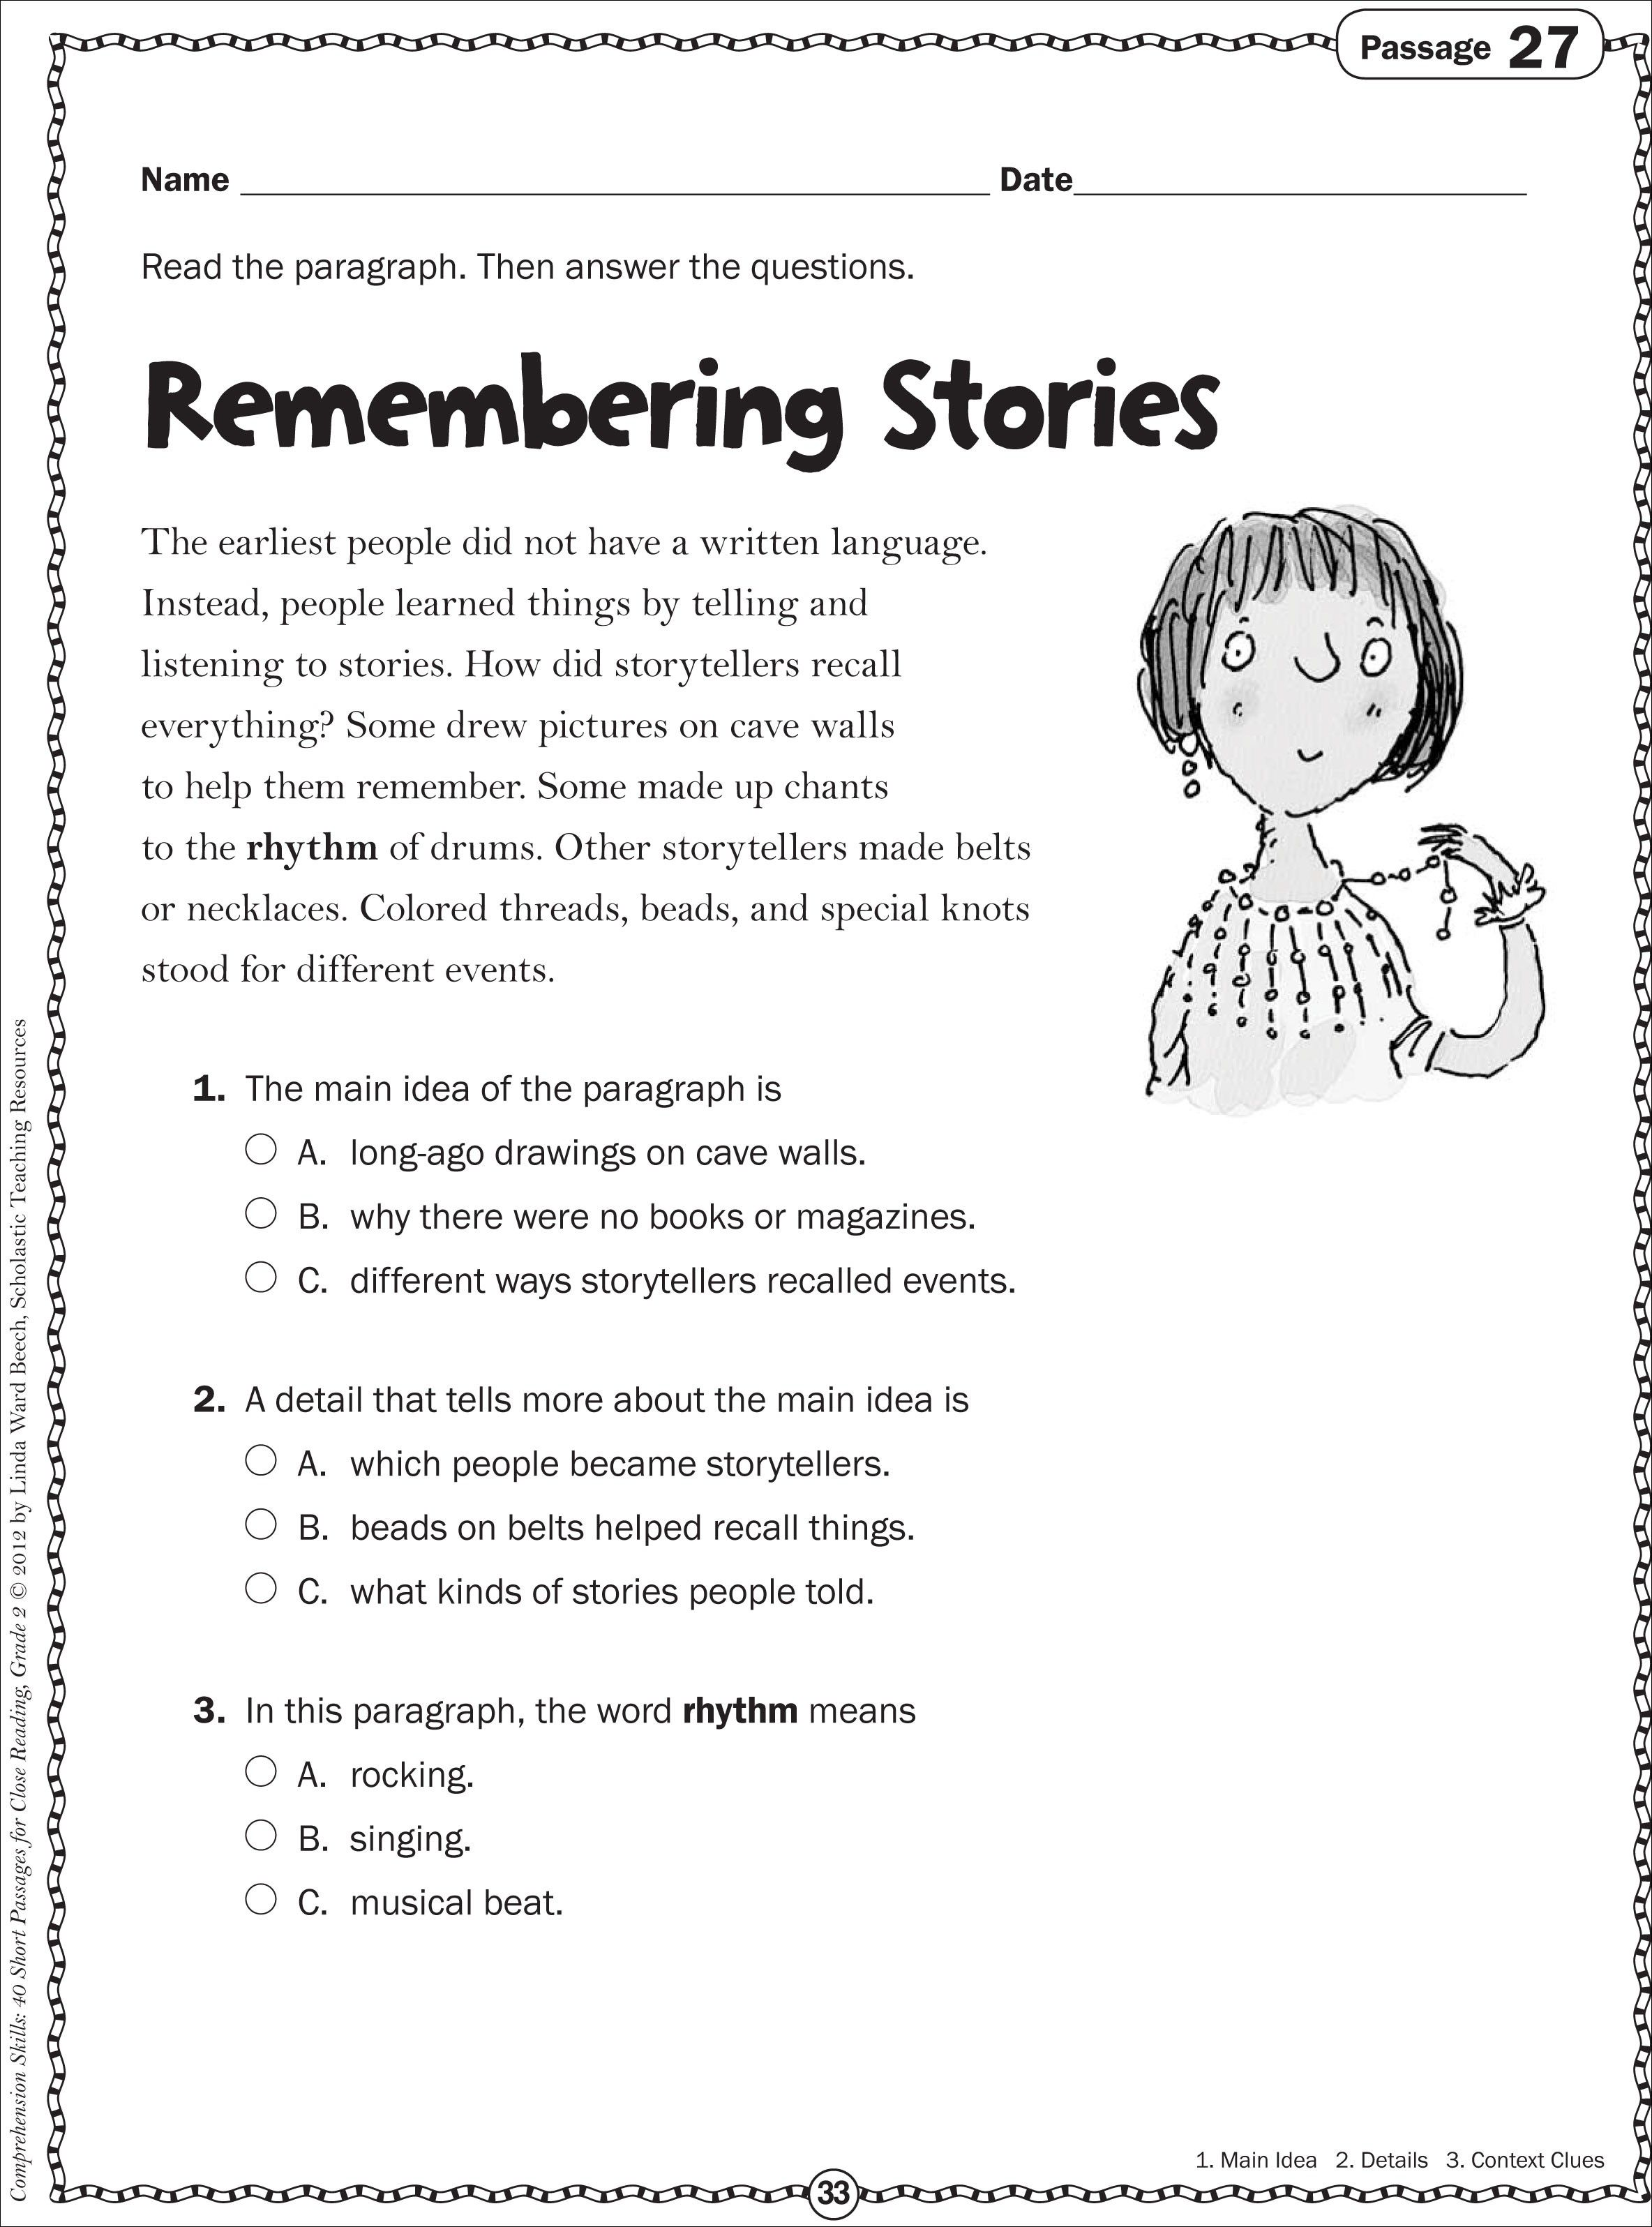 Worksheets Free Reading Worksheets For 5th Grade grade 2 reading passages memarchoapraga school pinterest improve comprehensionfree printable worksheetsreading